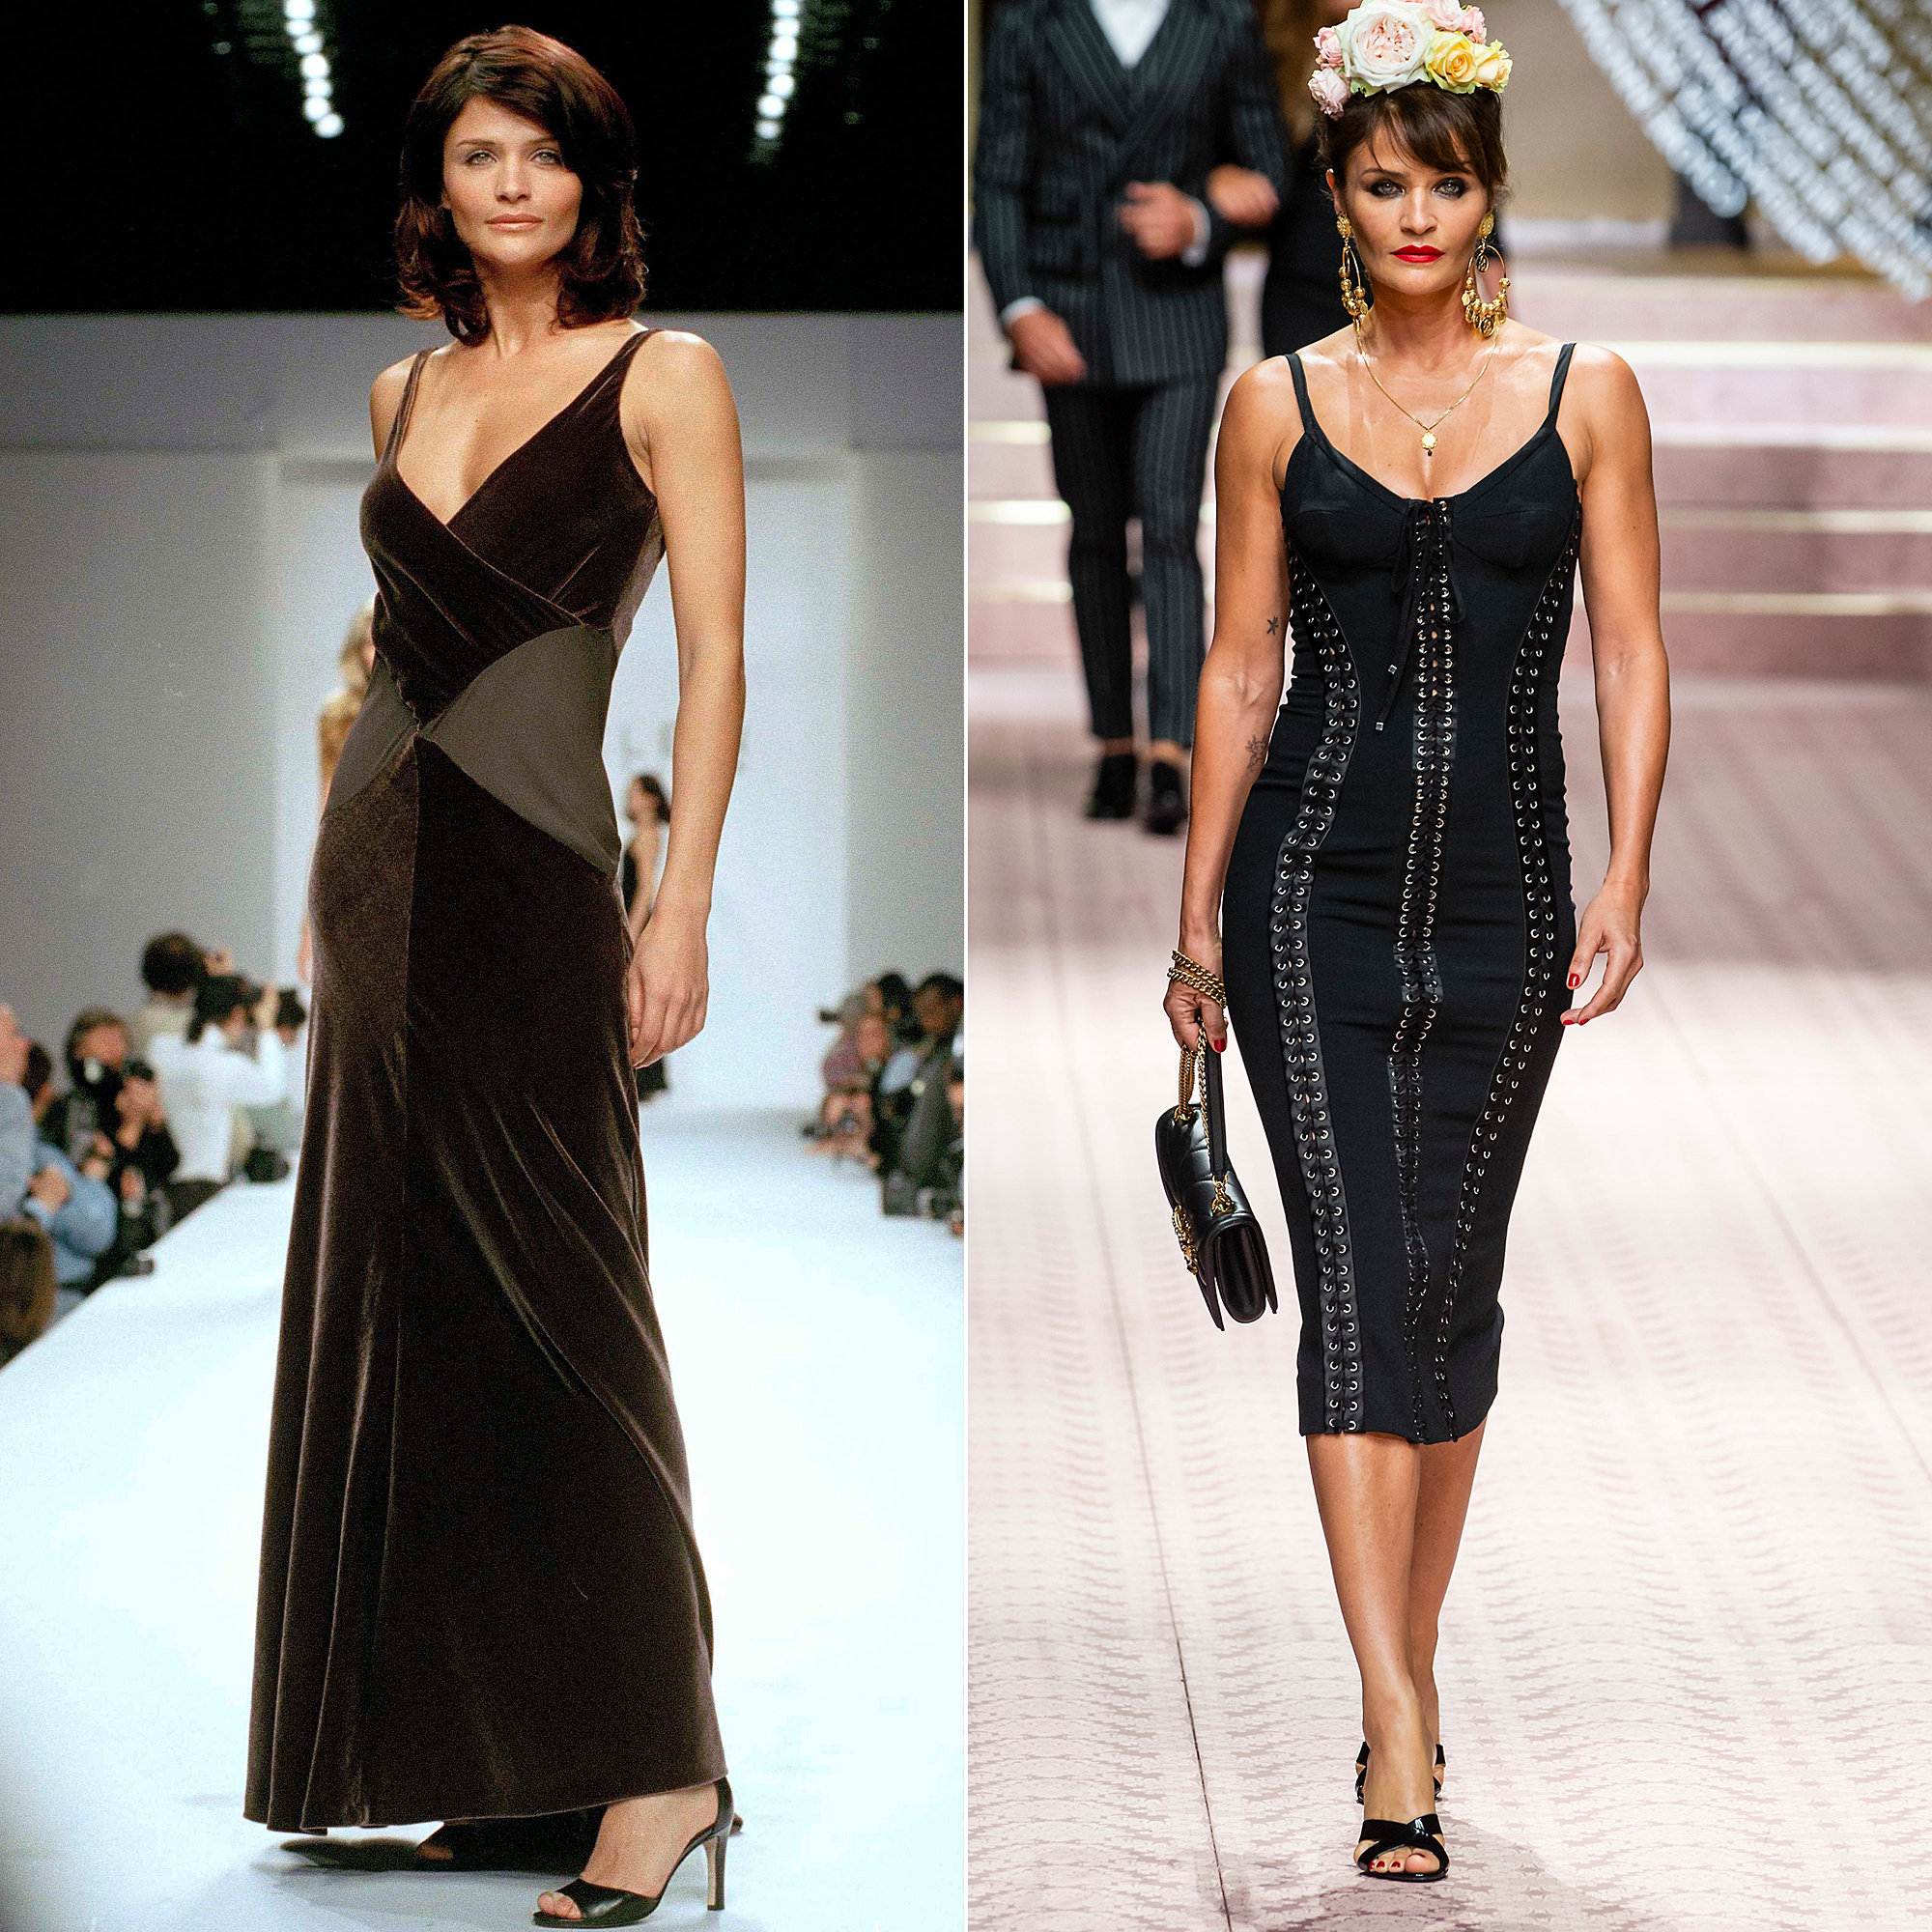 90s Supermodels On The Runway Then And Now Pics